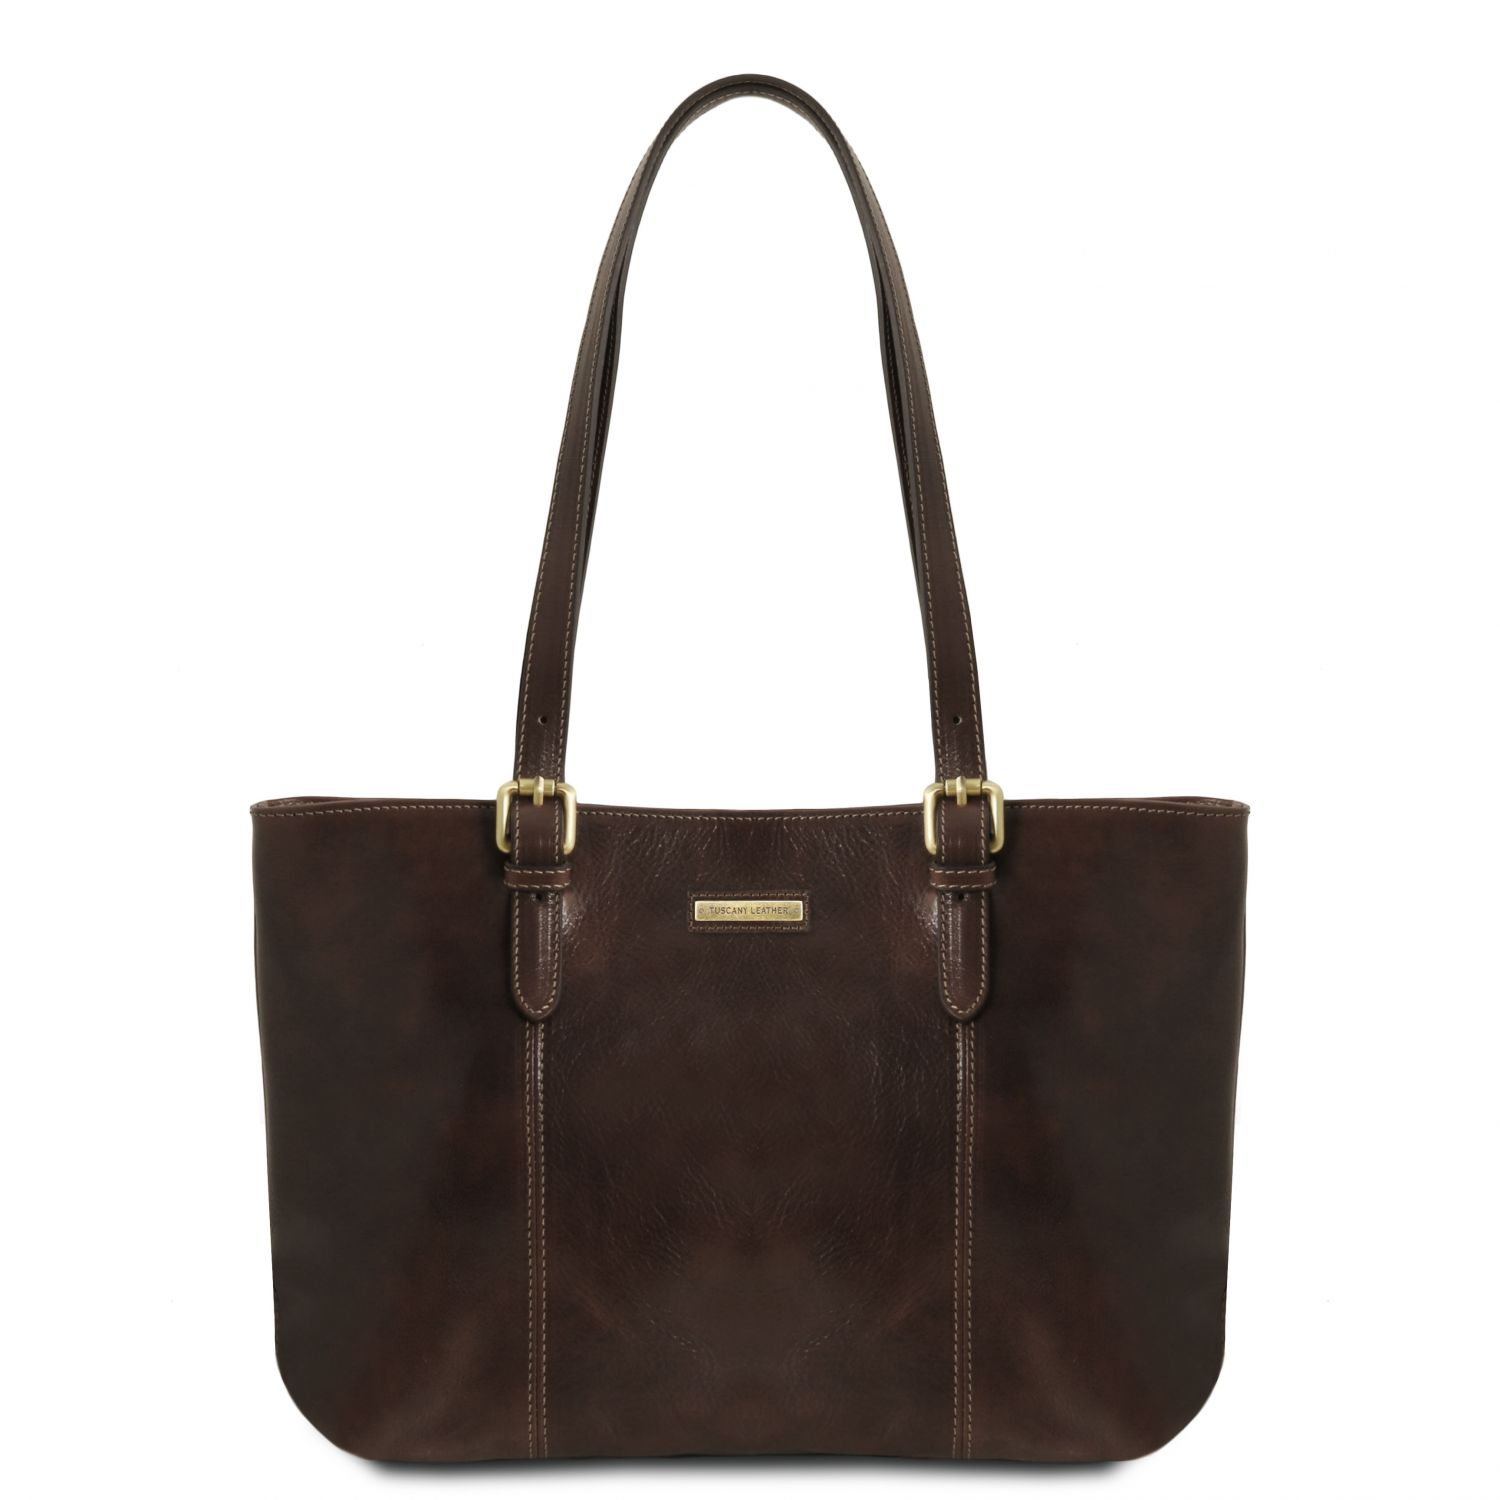 Leather Shopping Bag With Two Handles Made In Tuscany Region Italy Details about  /Annalisa